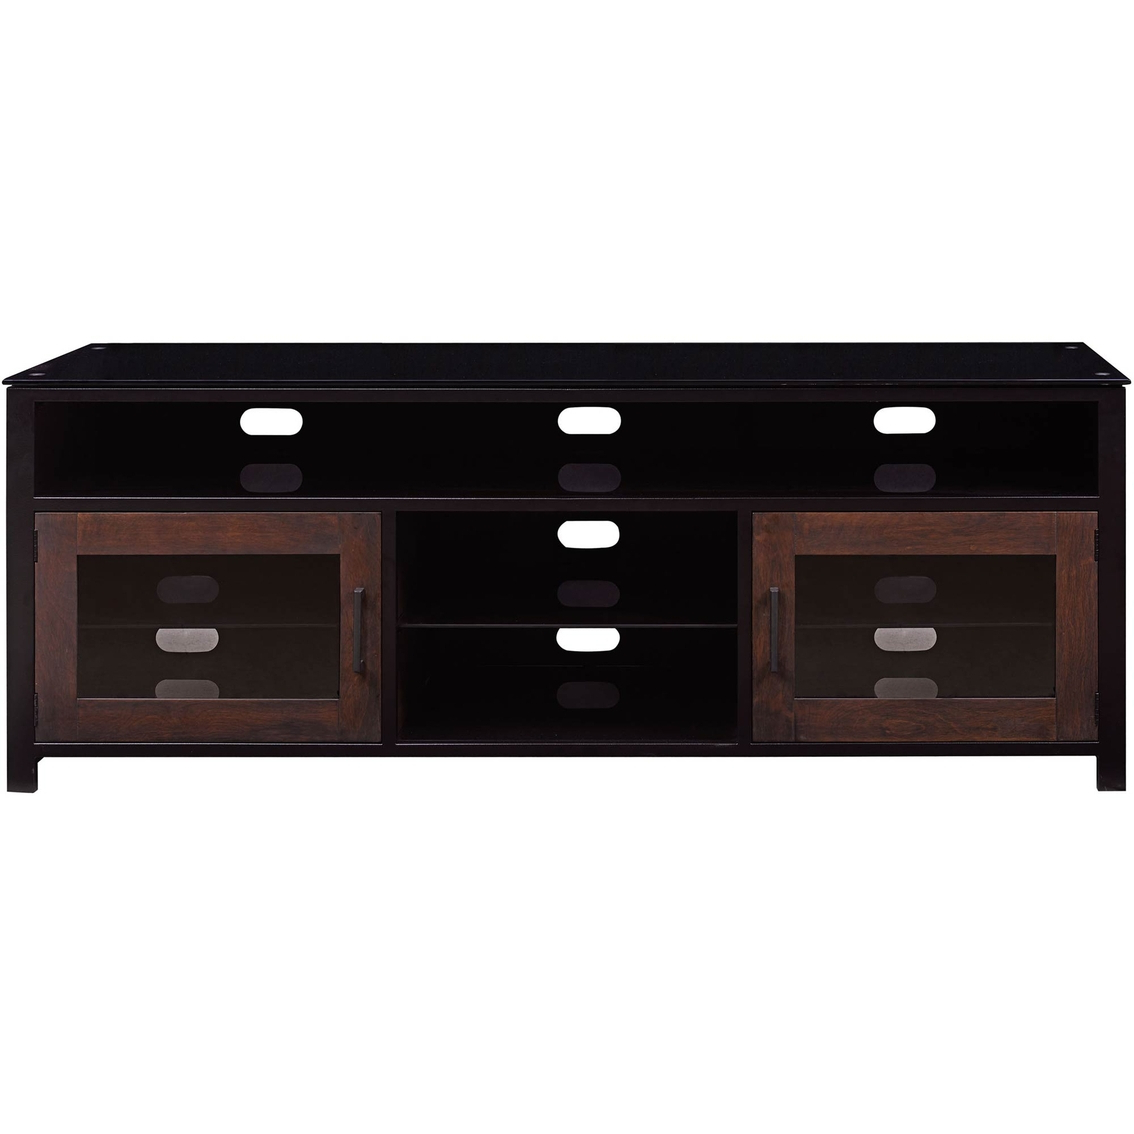 Preferred Bell'o Bedford Aim Wood Tv Stand (Gallery 16 of 20)